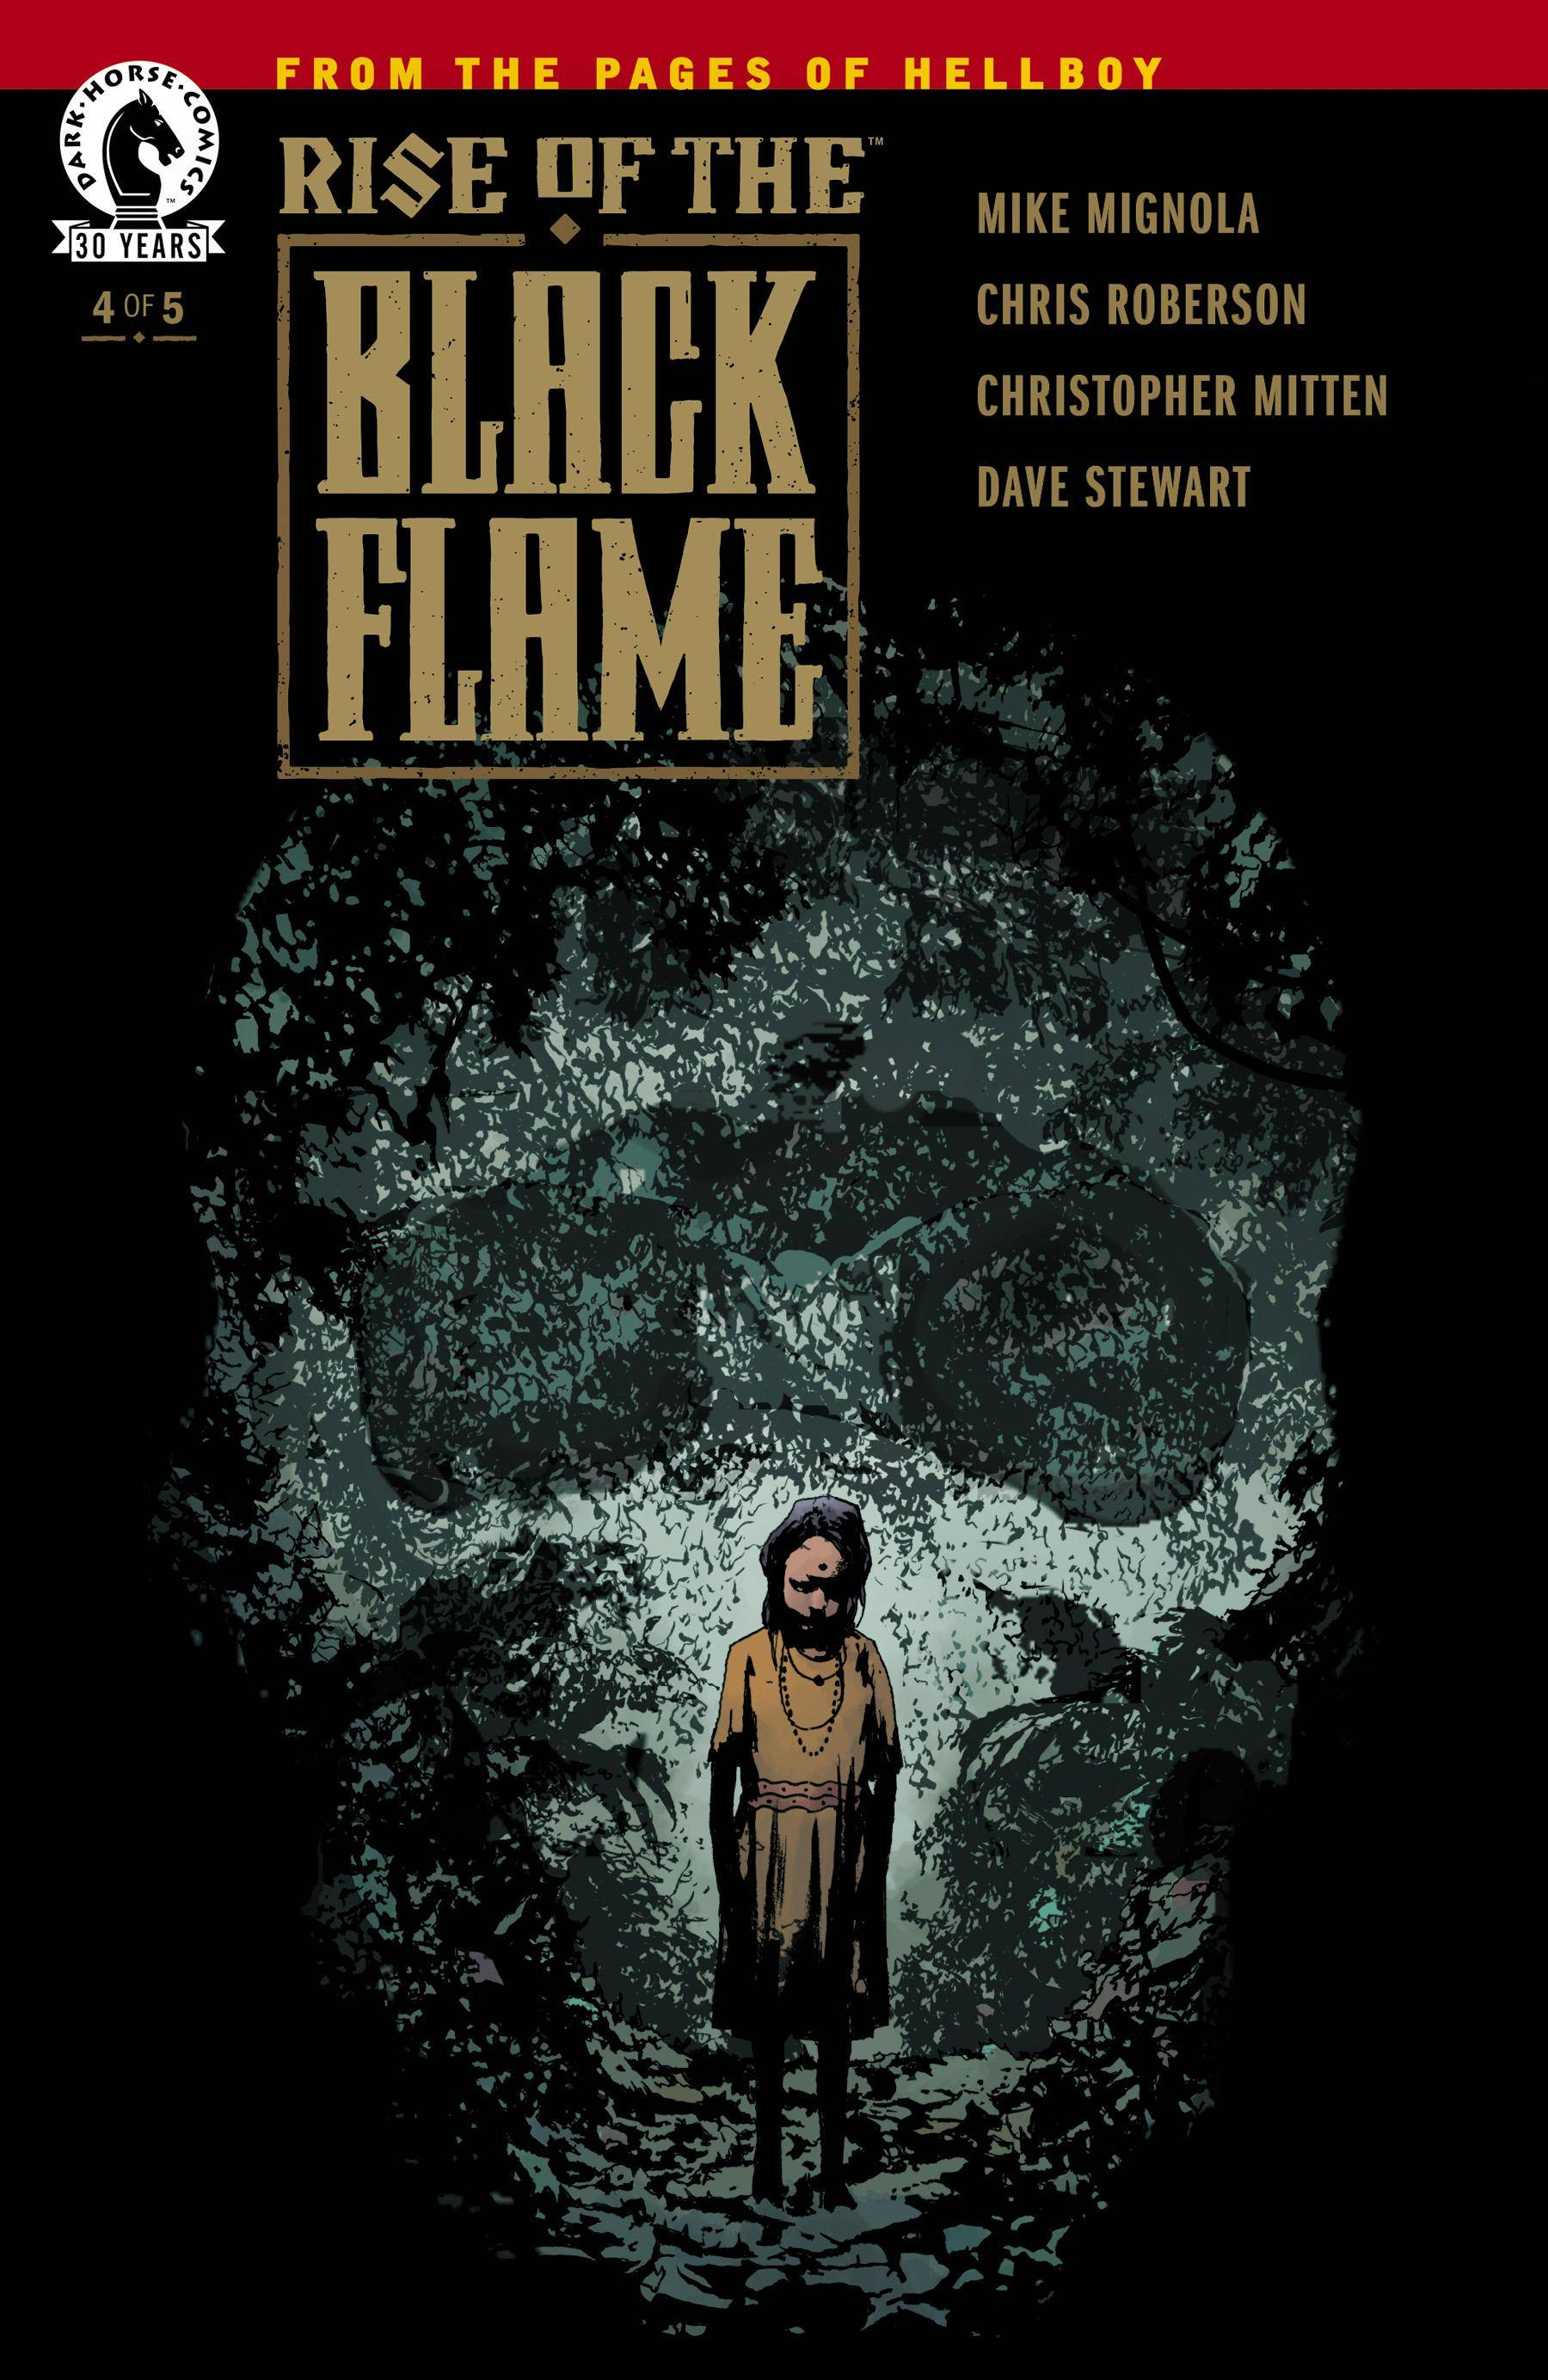 Rise of the Black Flame 04 of 05 2016 digital